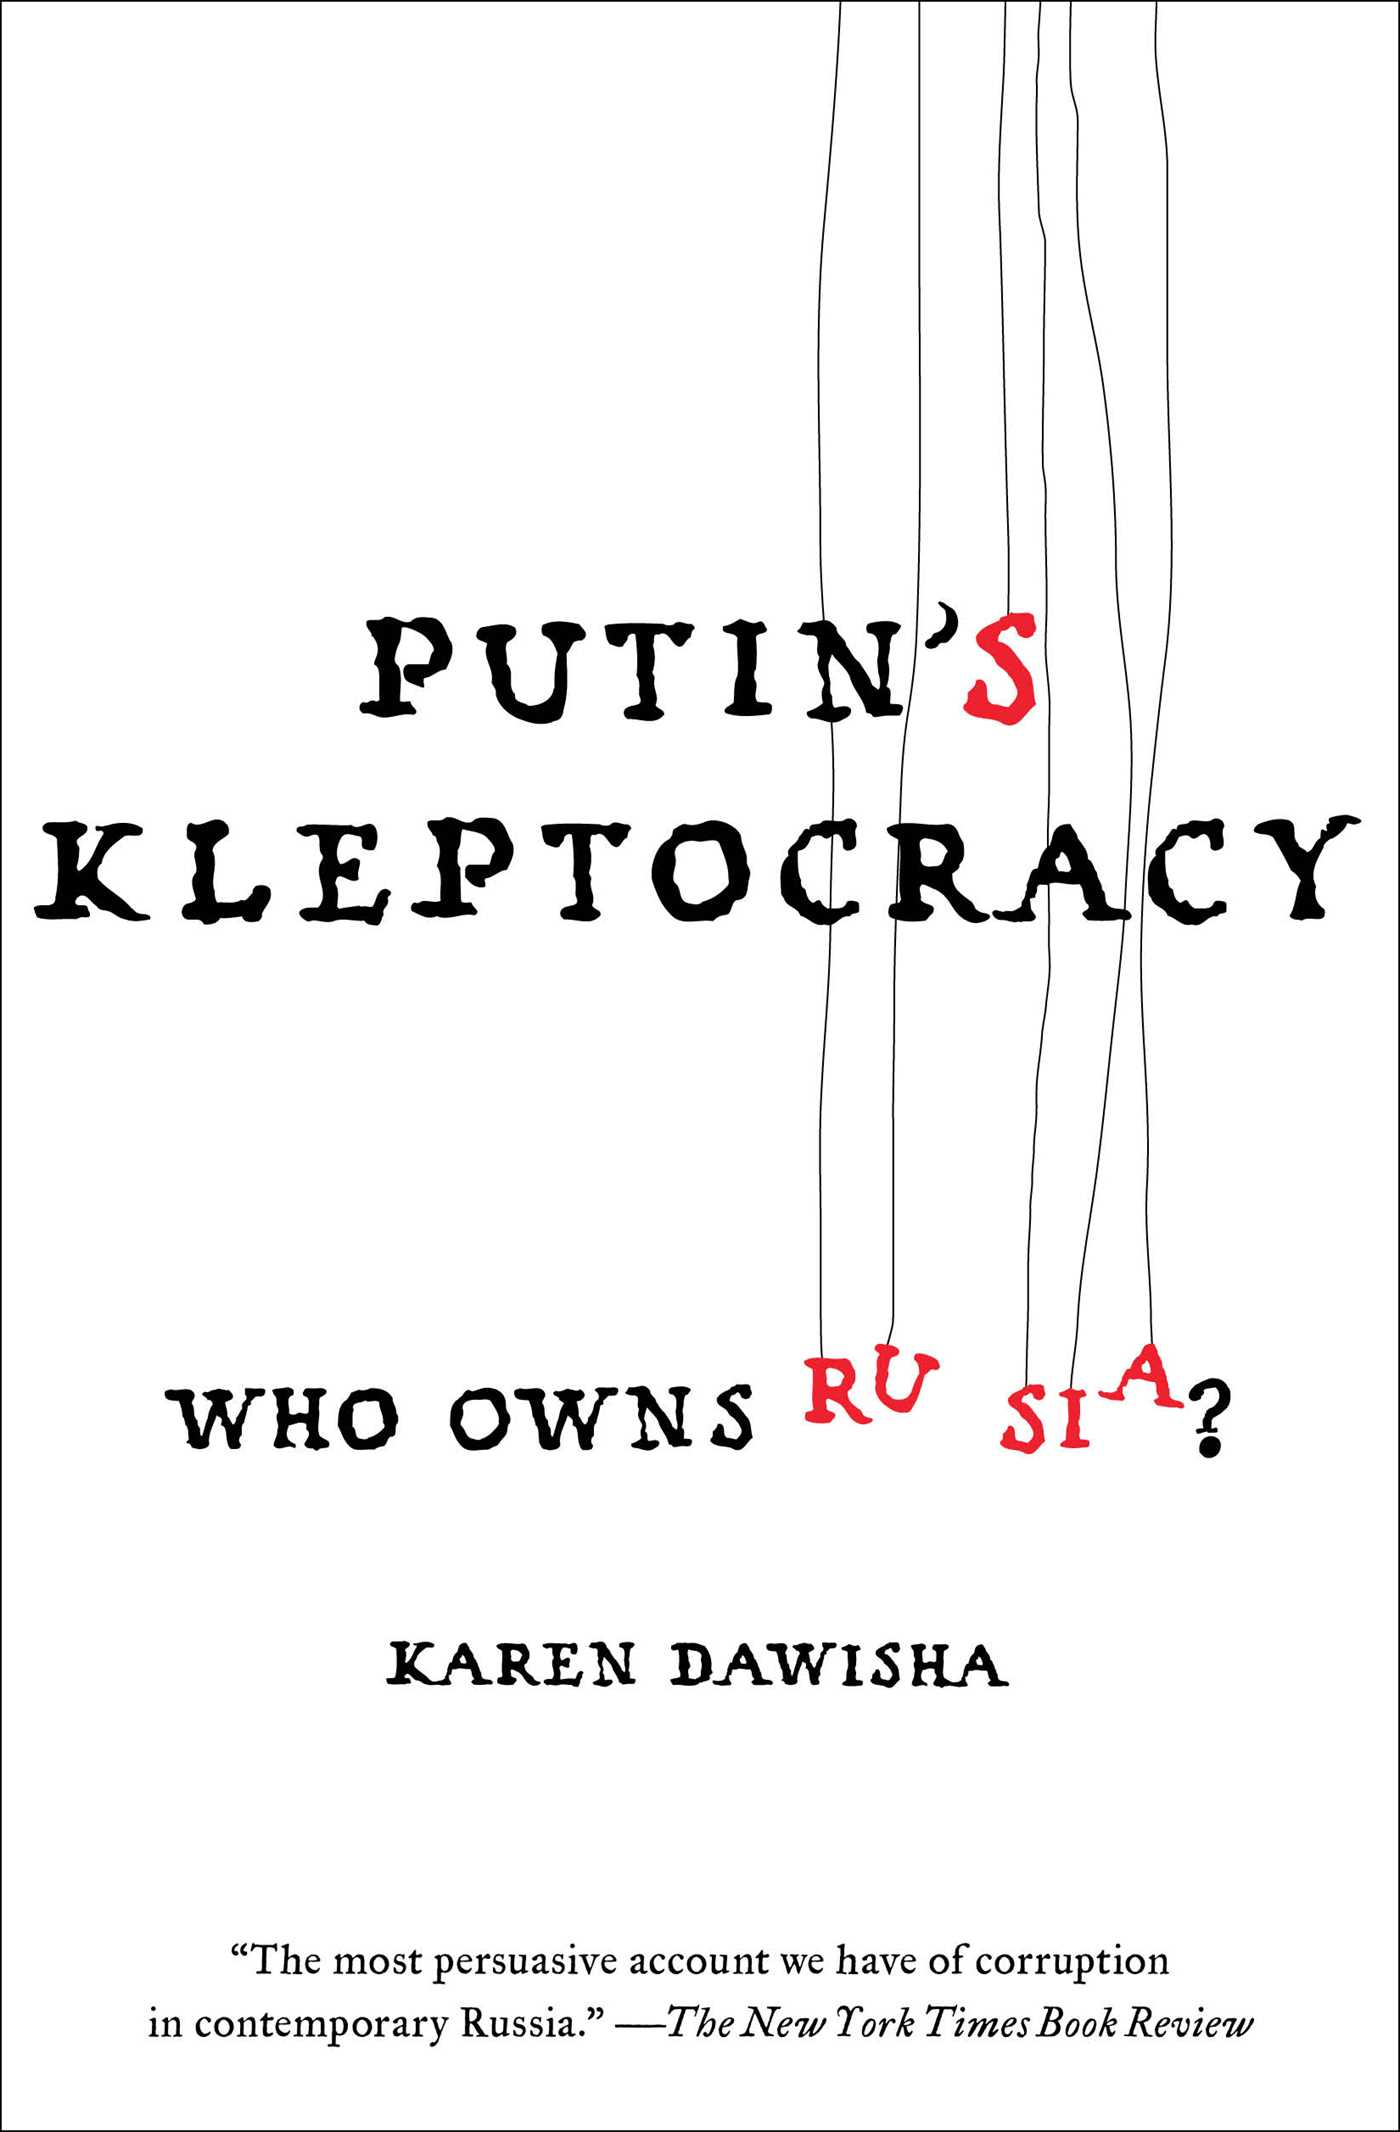 Putins kleptocracy 9781476795201 hr